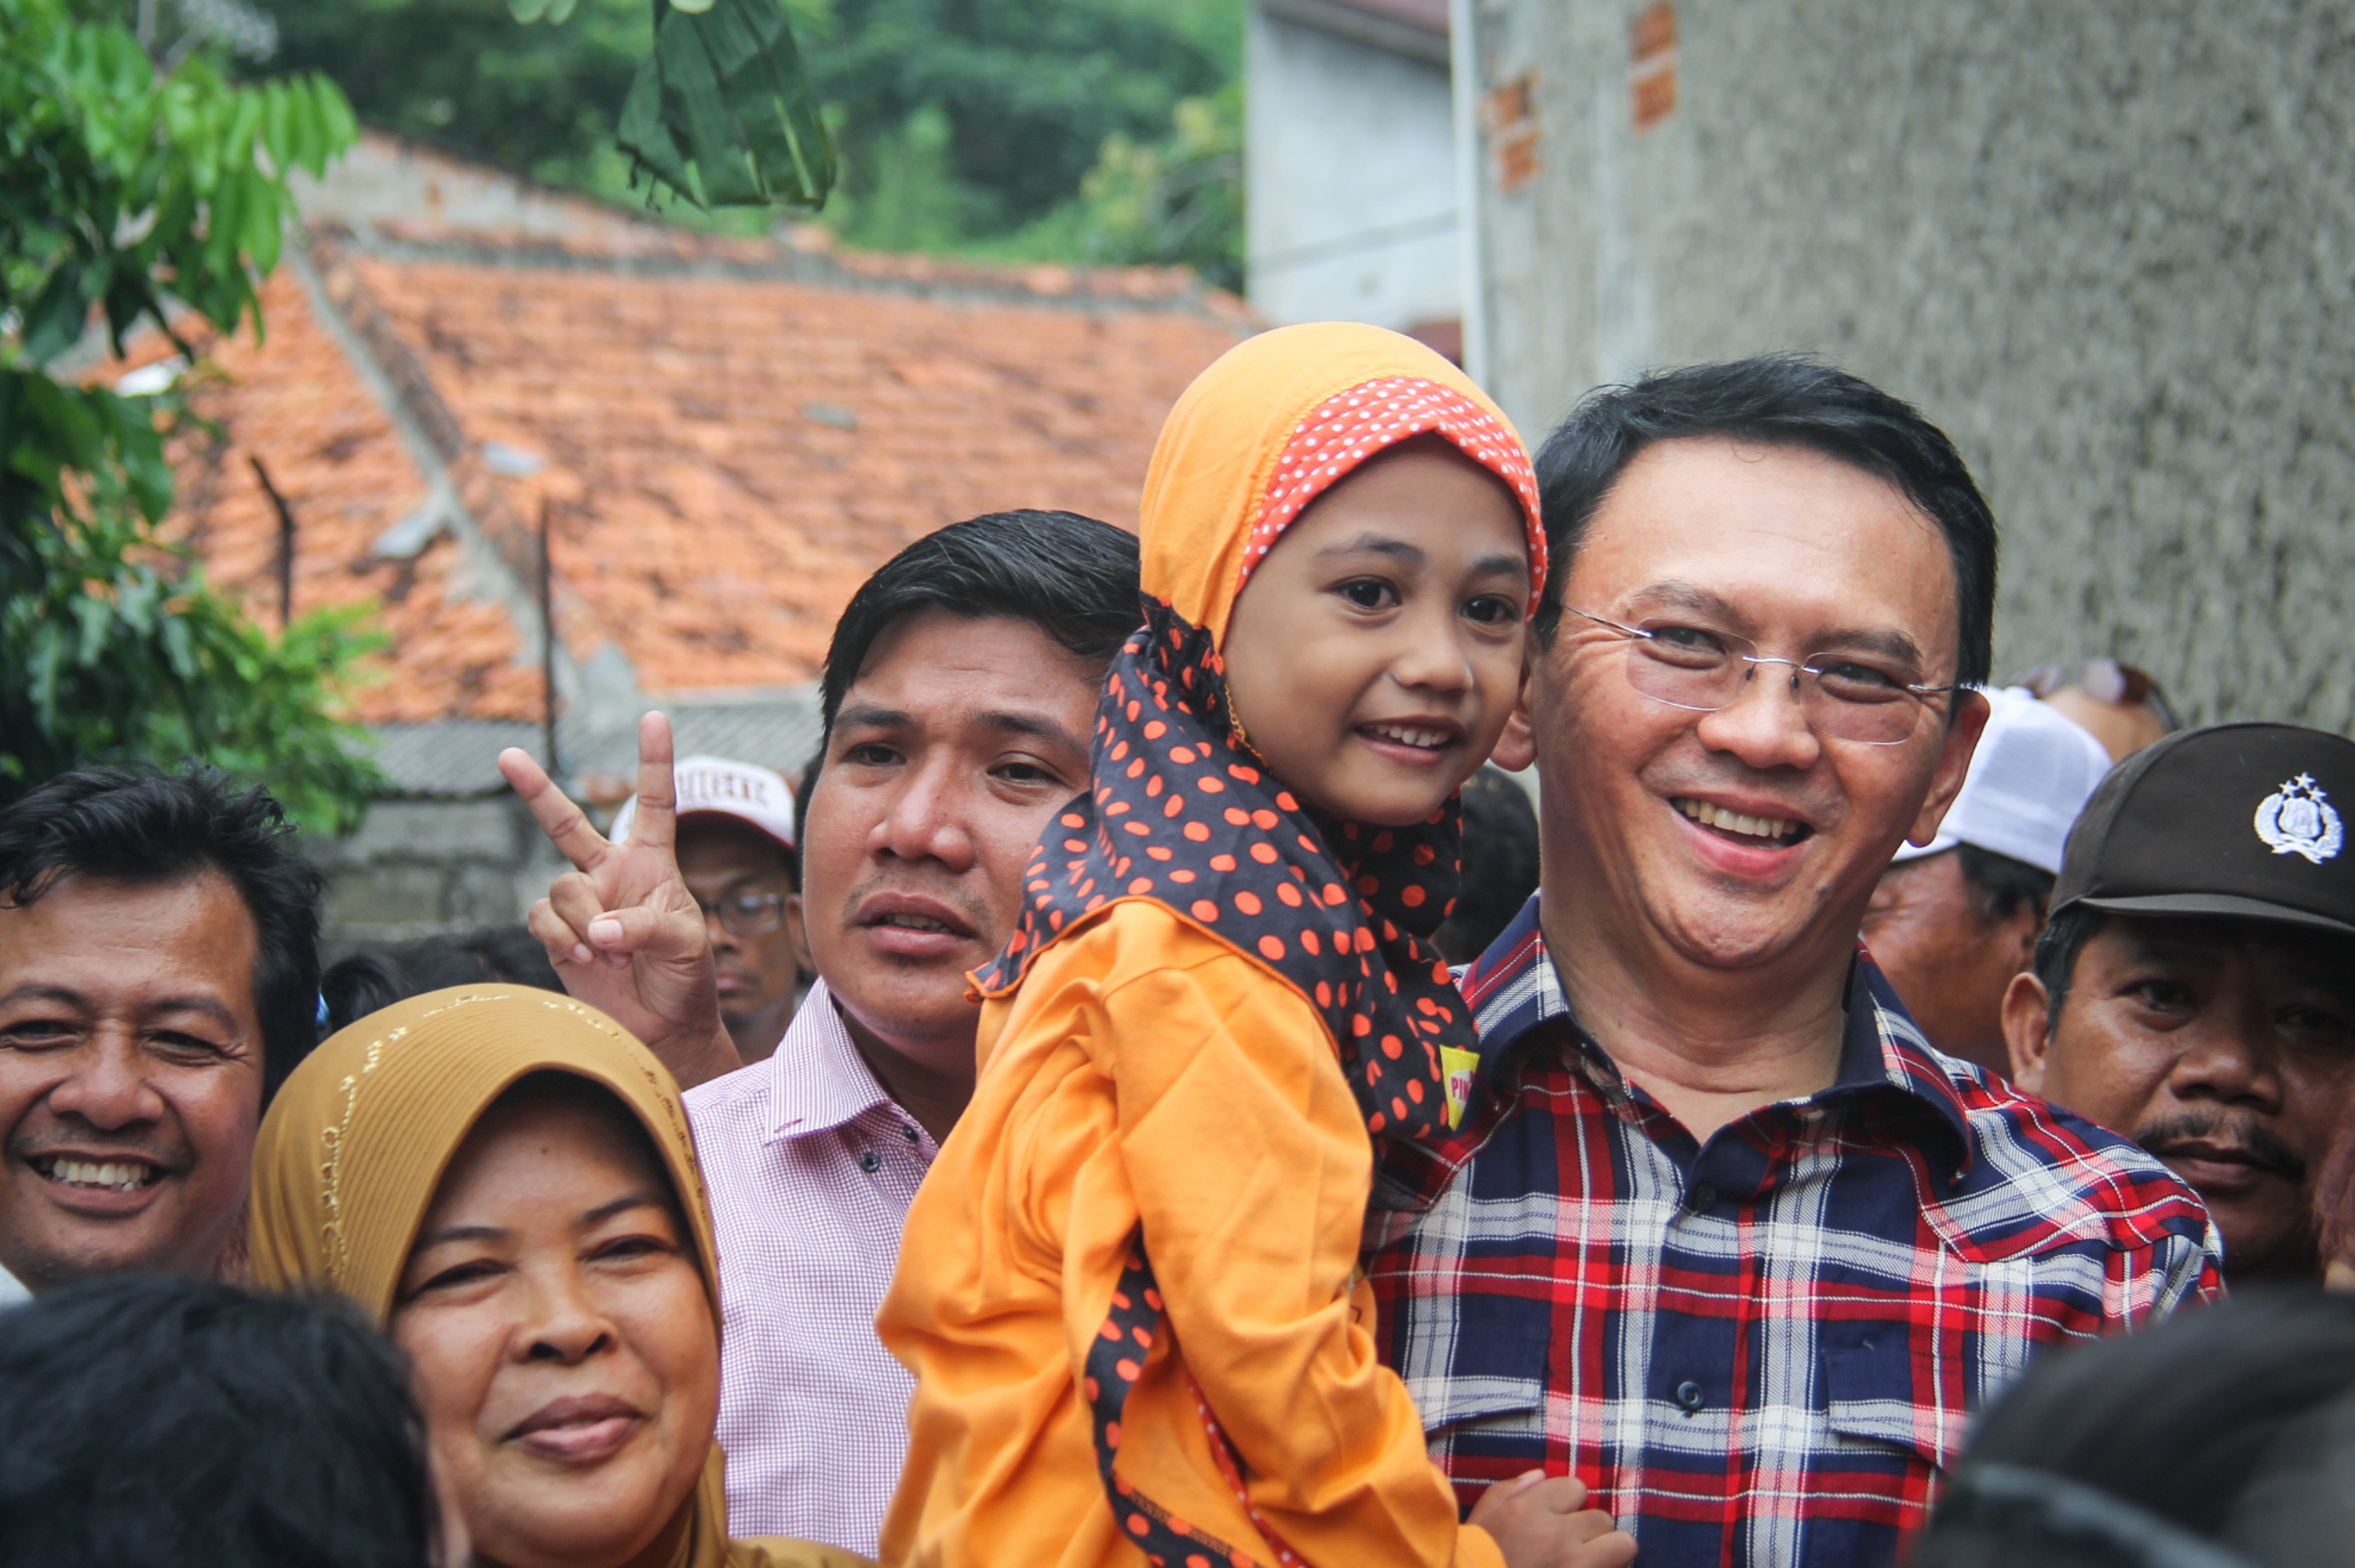 Residents and reporters follow Basuki Tjahaja Purnama, the first Christian,  ethnic Chinese governor of Jakarta, as he campaigns for election in an East  ...